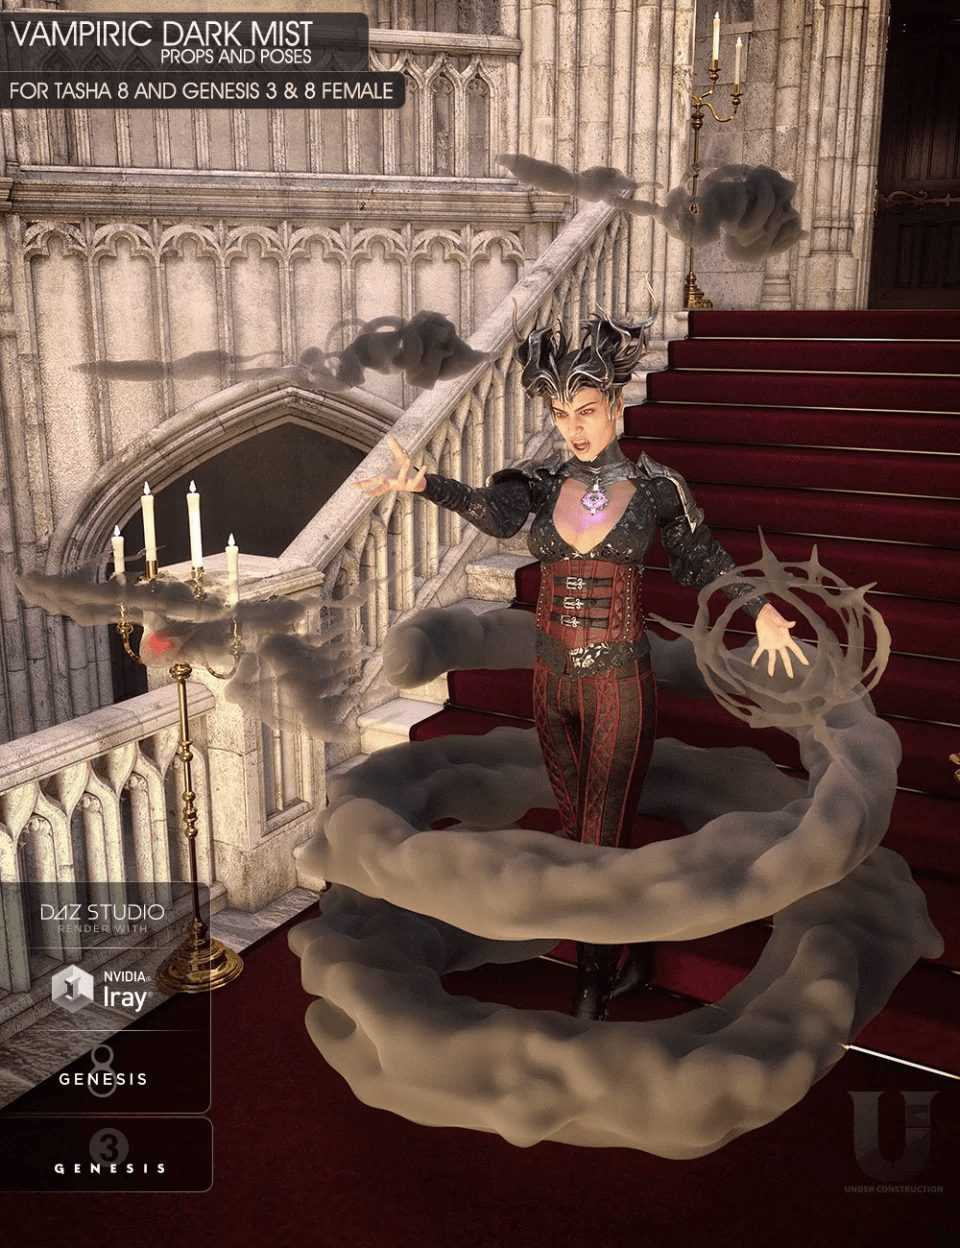 Vampiric Dark Mist Props and Poses for Genesis 3 and 8 Female